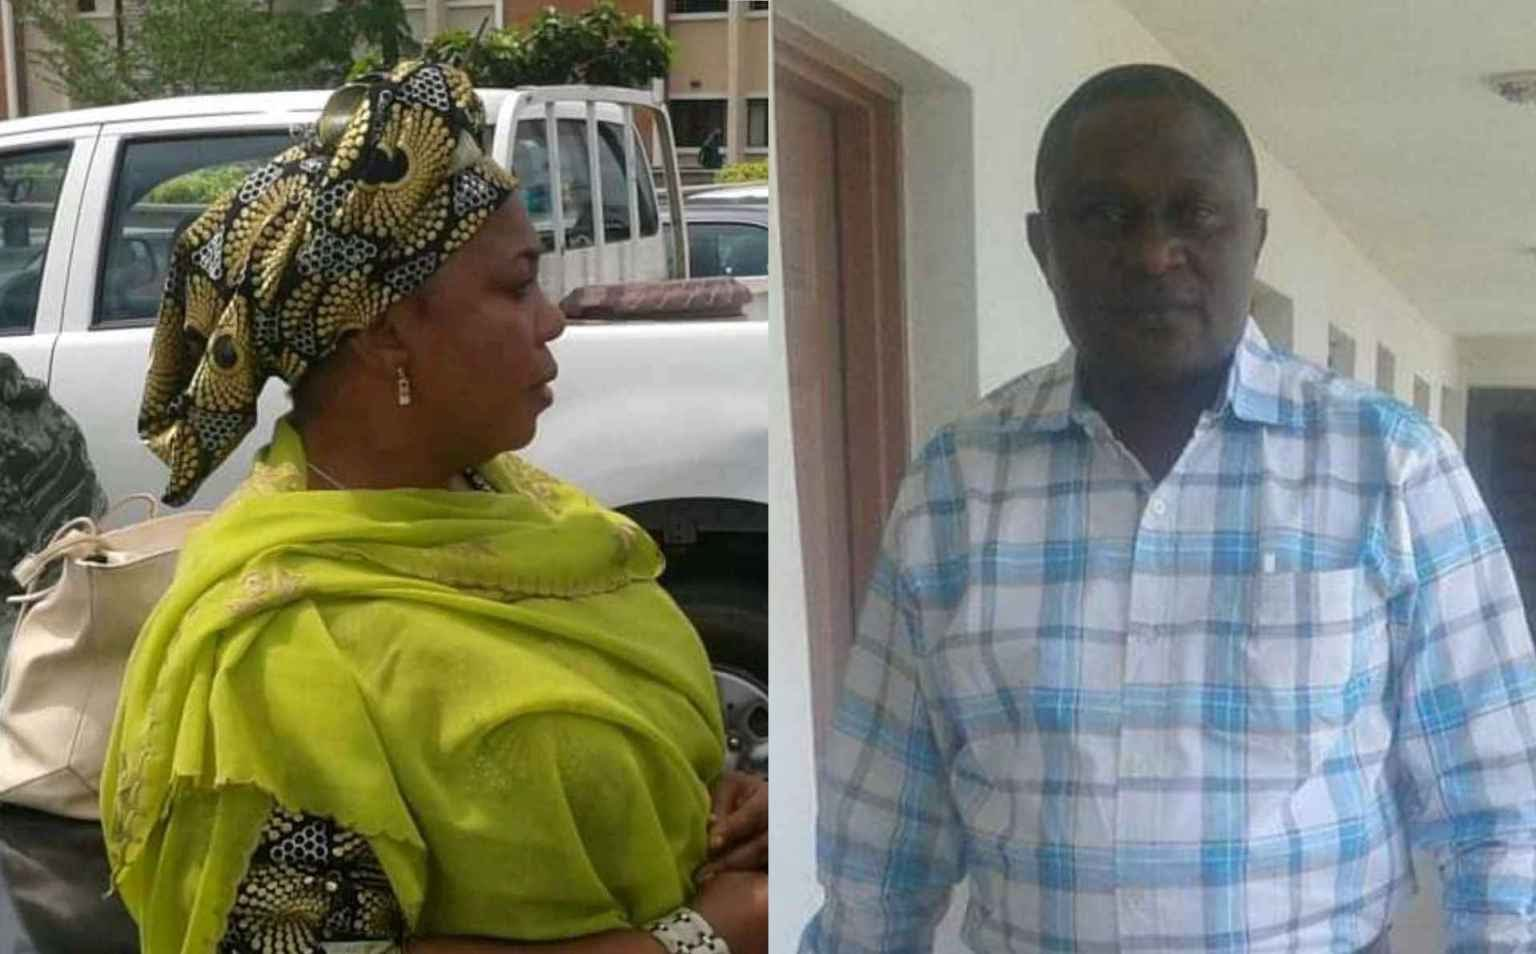 Trial Of Alleged N100m Kwara Bursary Scam Adjourned Due To Counsel's Absence In Courtroom